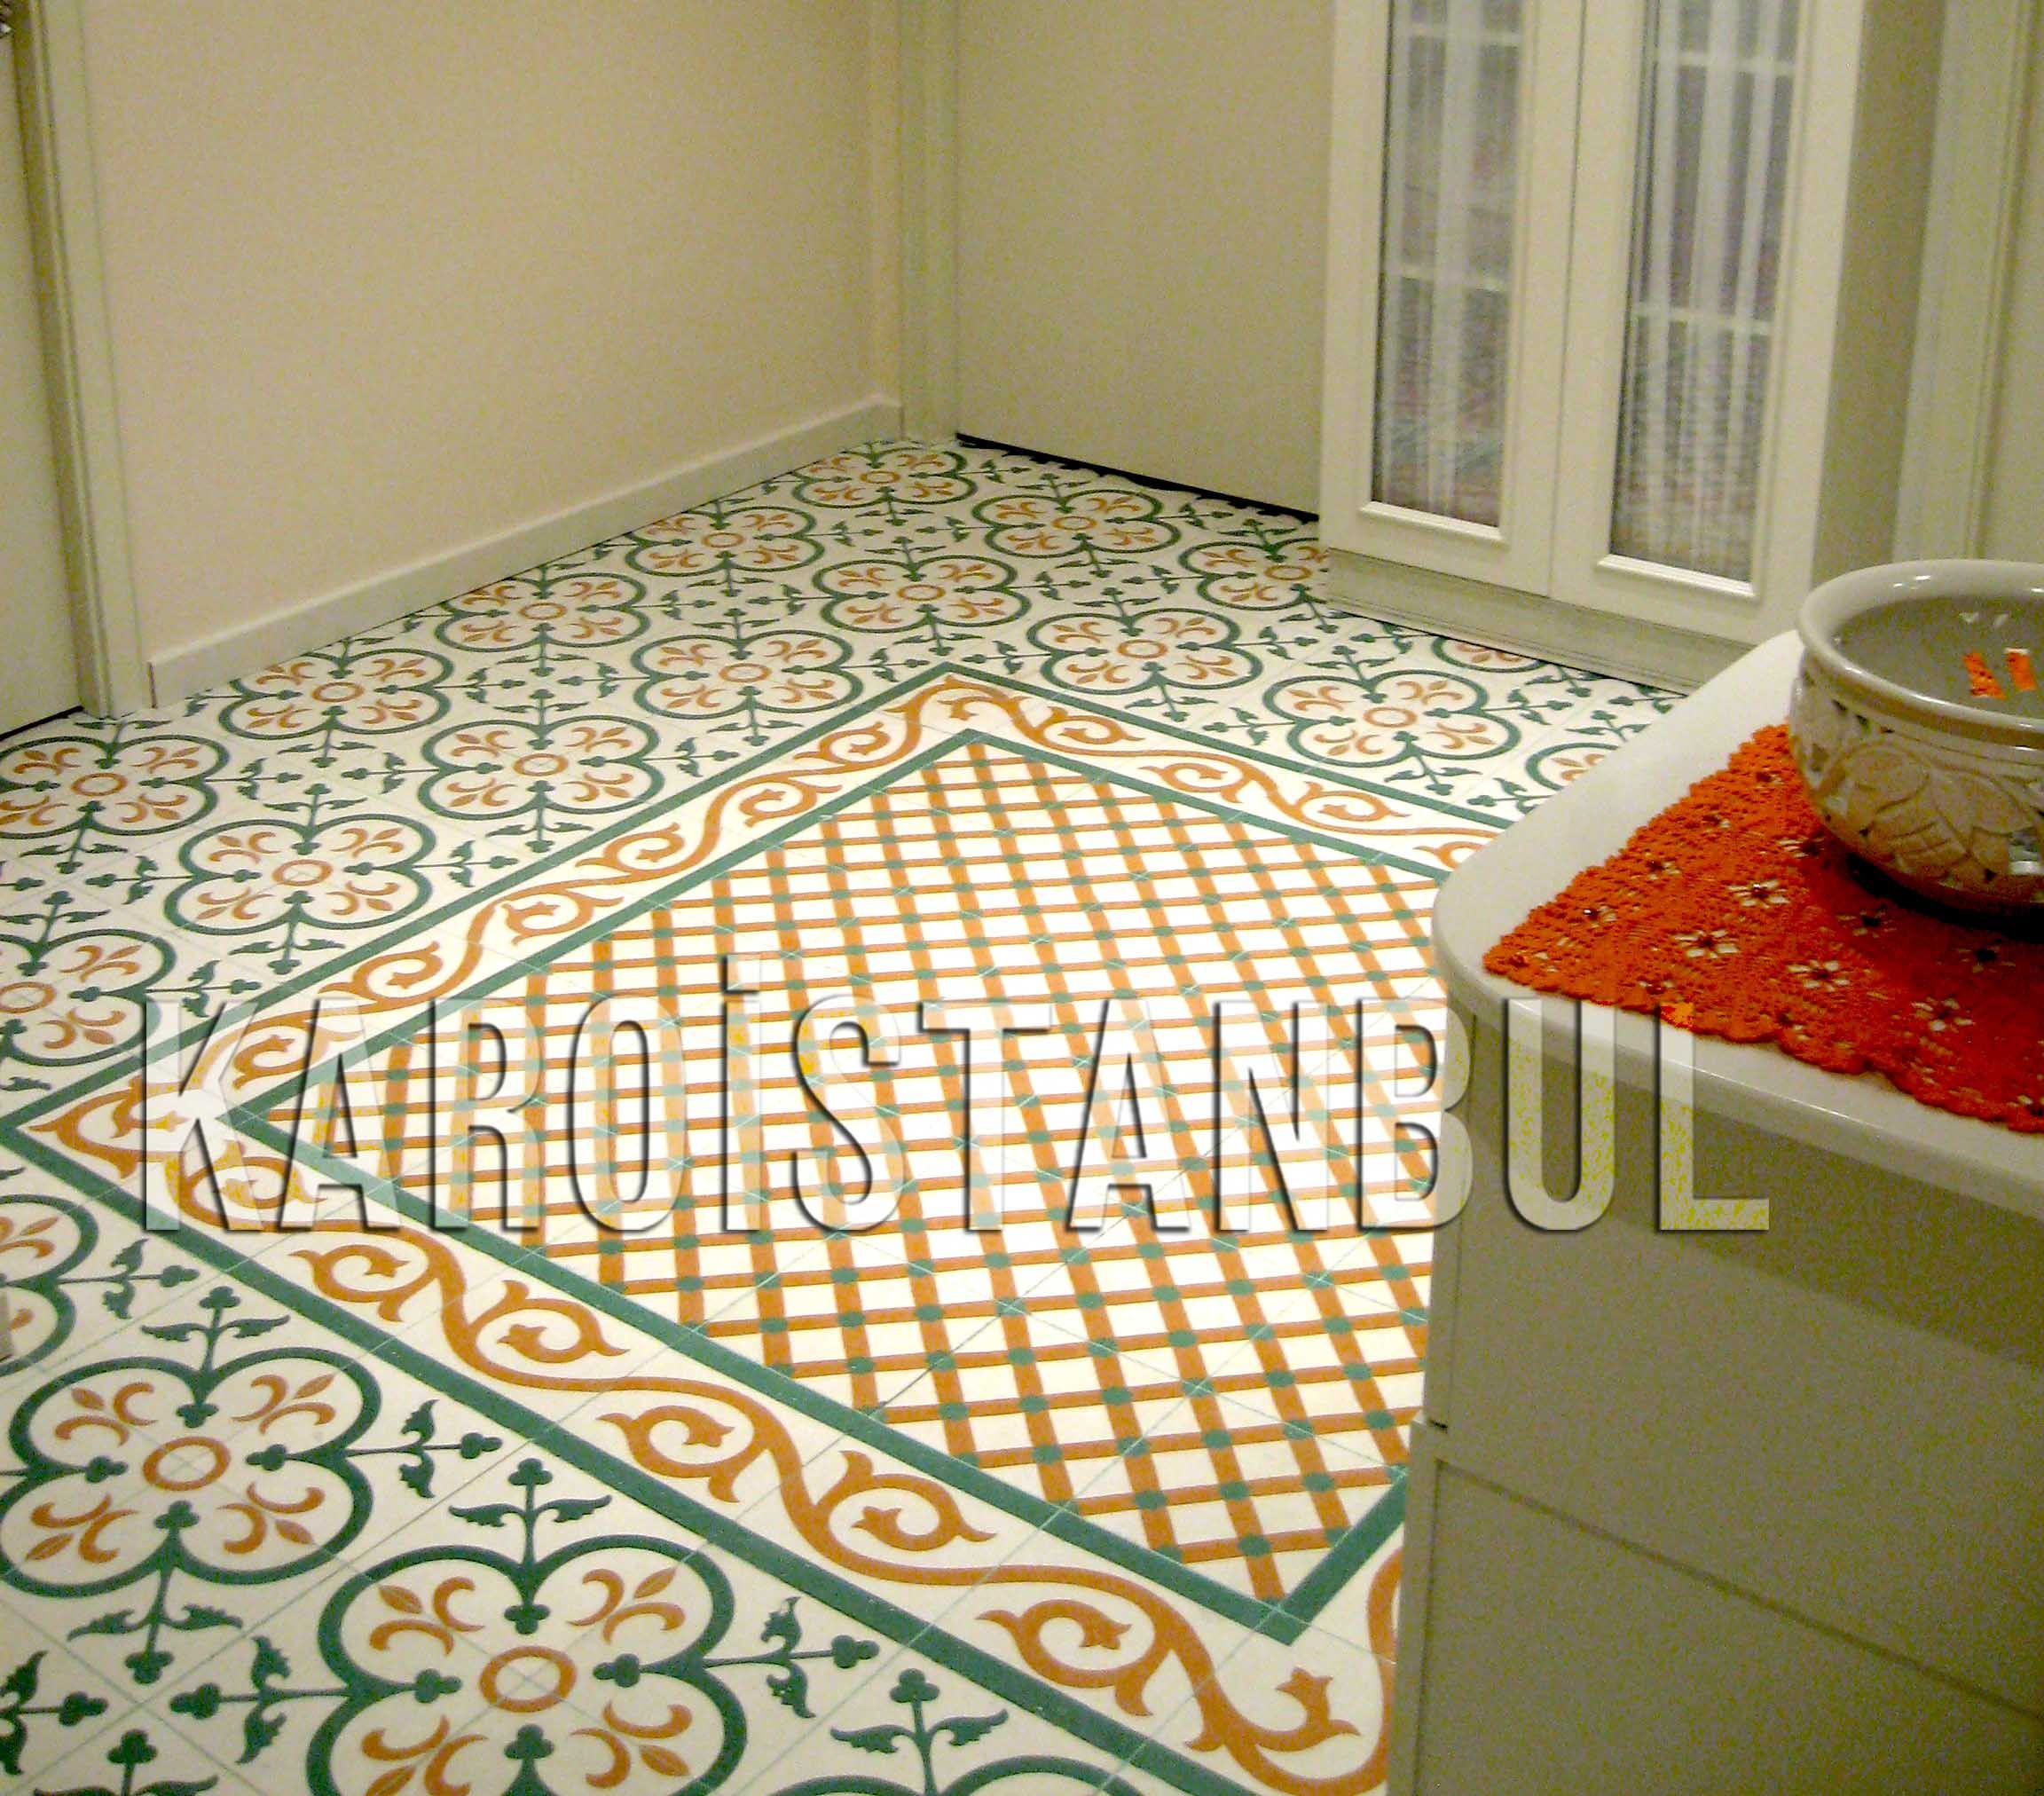 Encaustic Cement Tile Tiles In The Turkish Press Karoistanbul - Place and press floor tiles